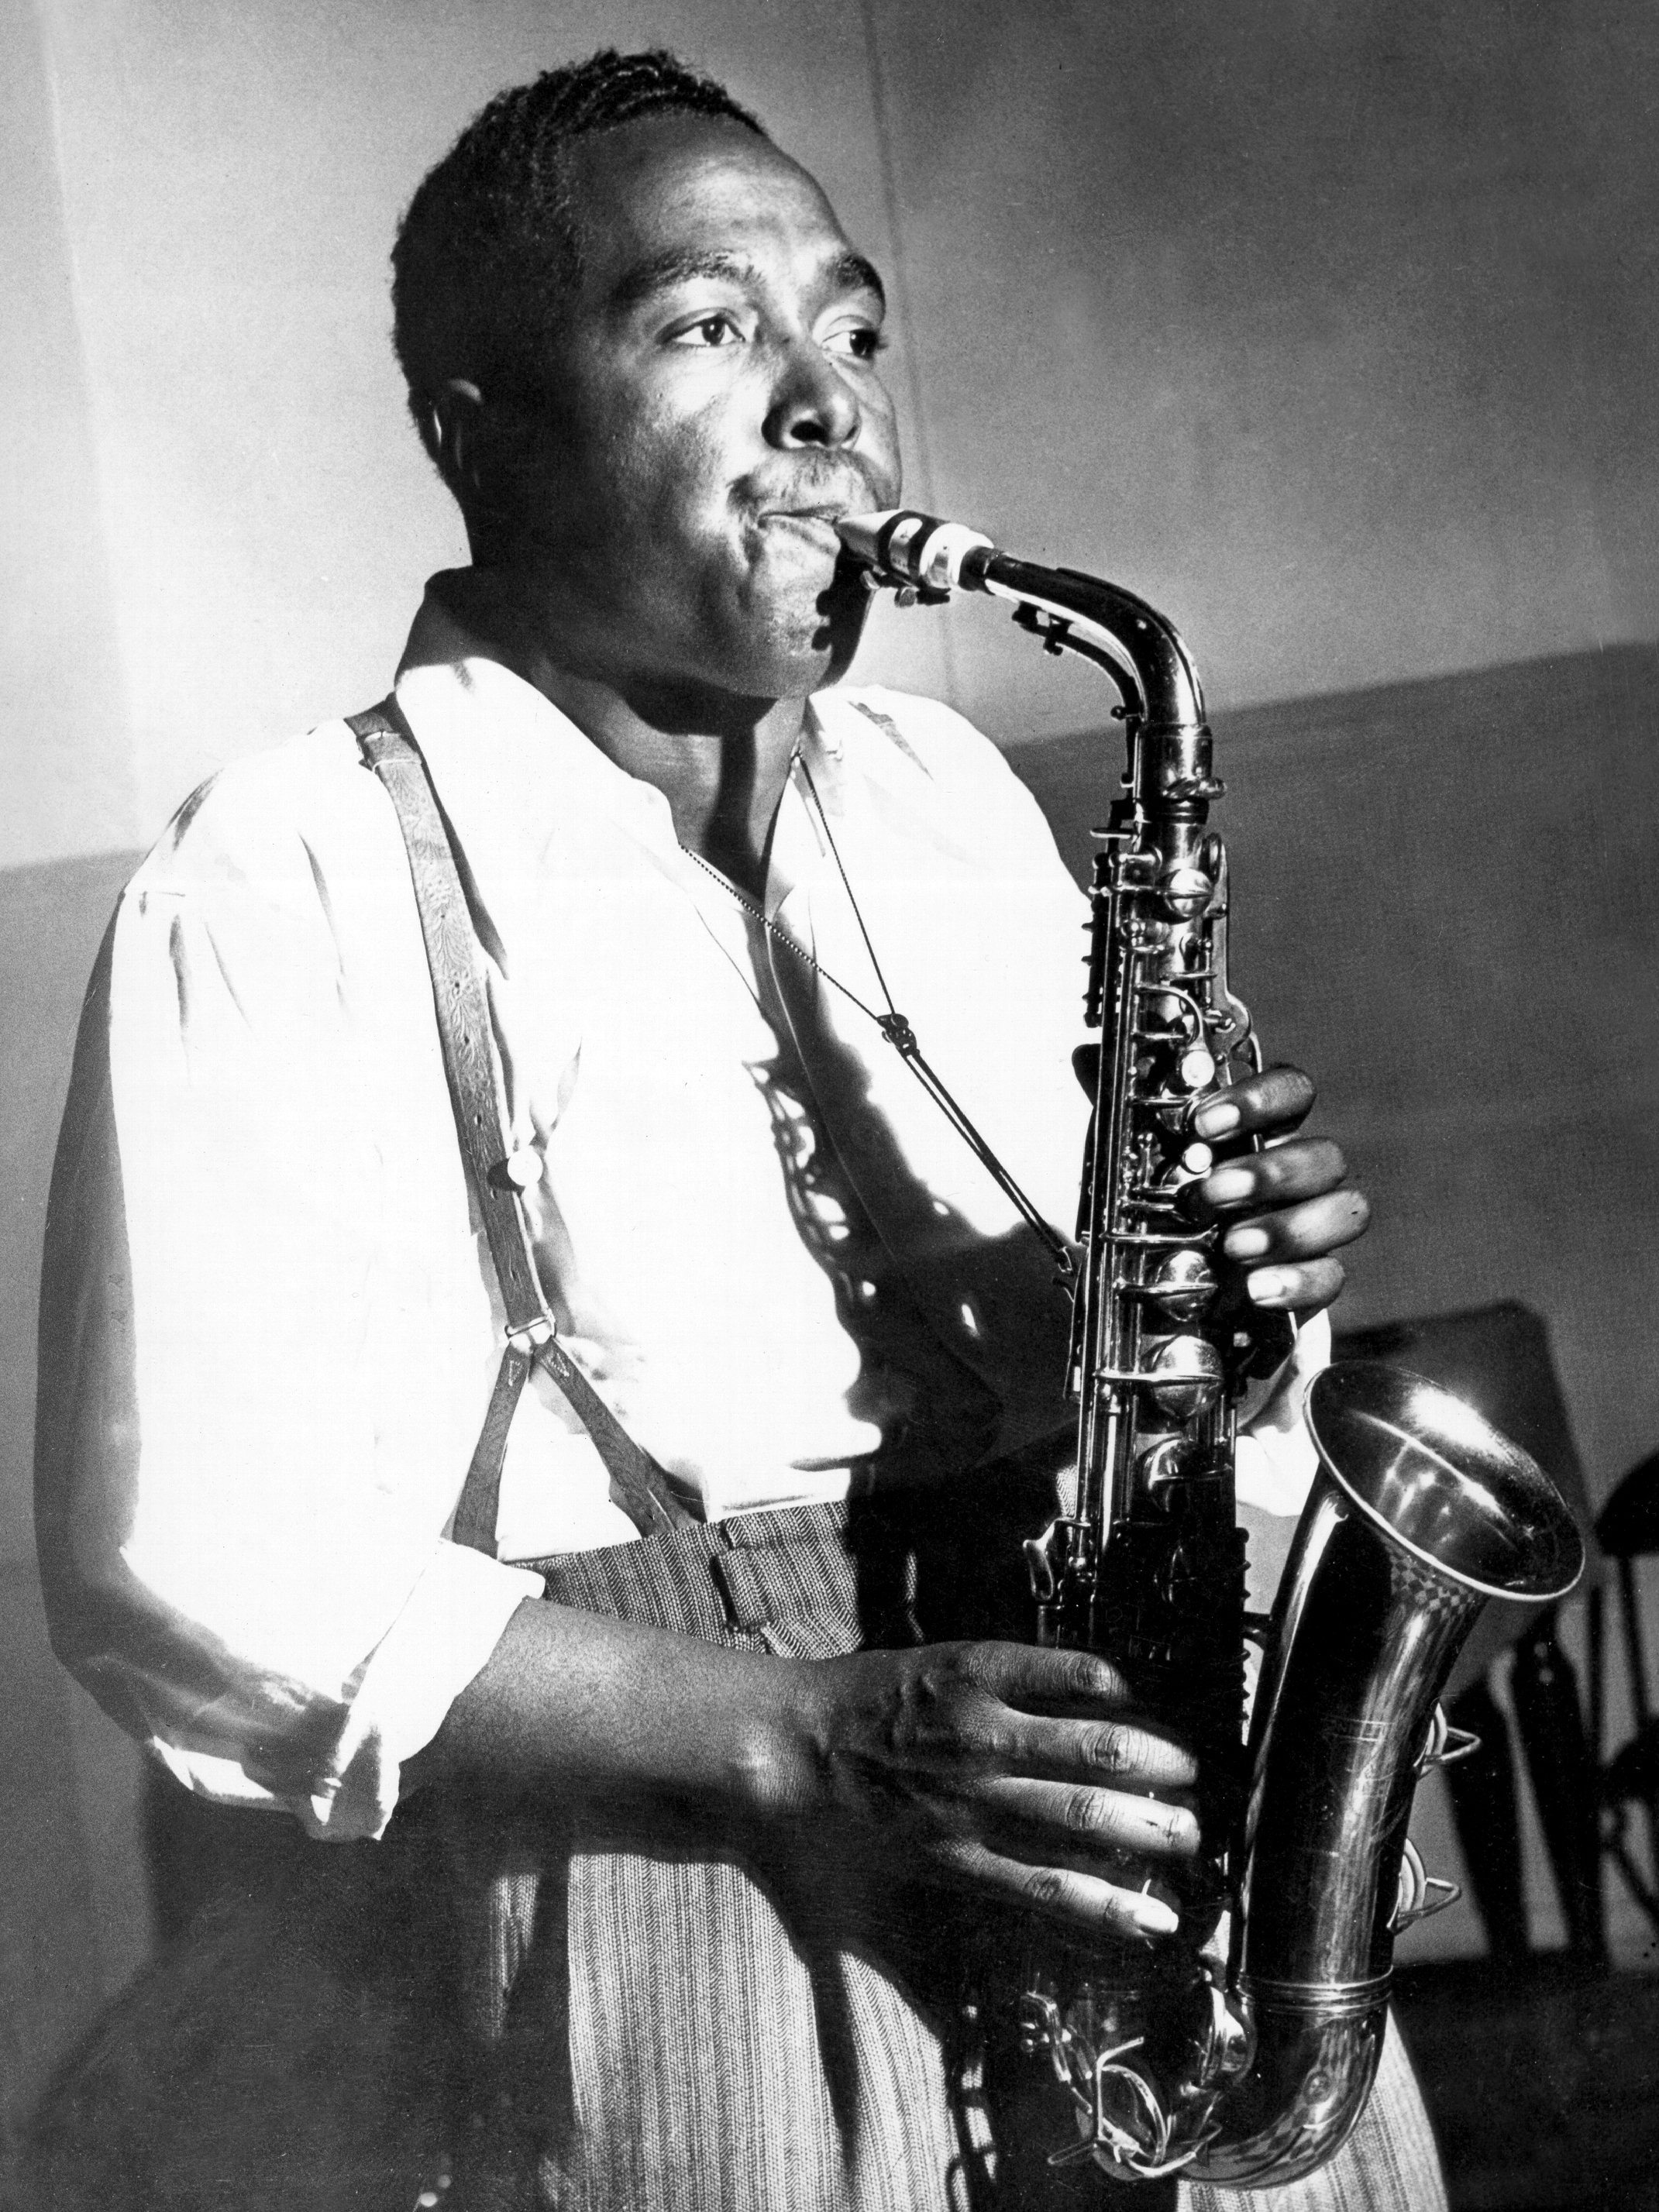 The Birth Of Bird: Young Charlie Parker Found Focus, Faith In Music